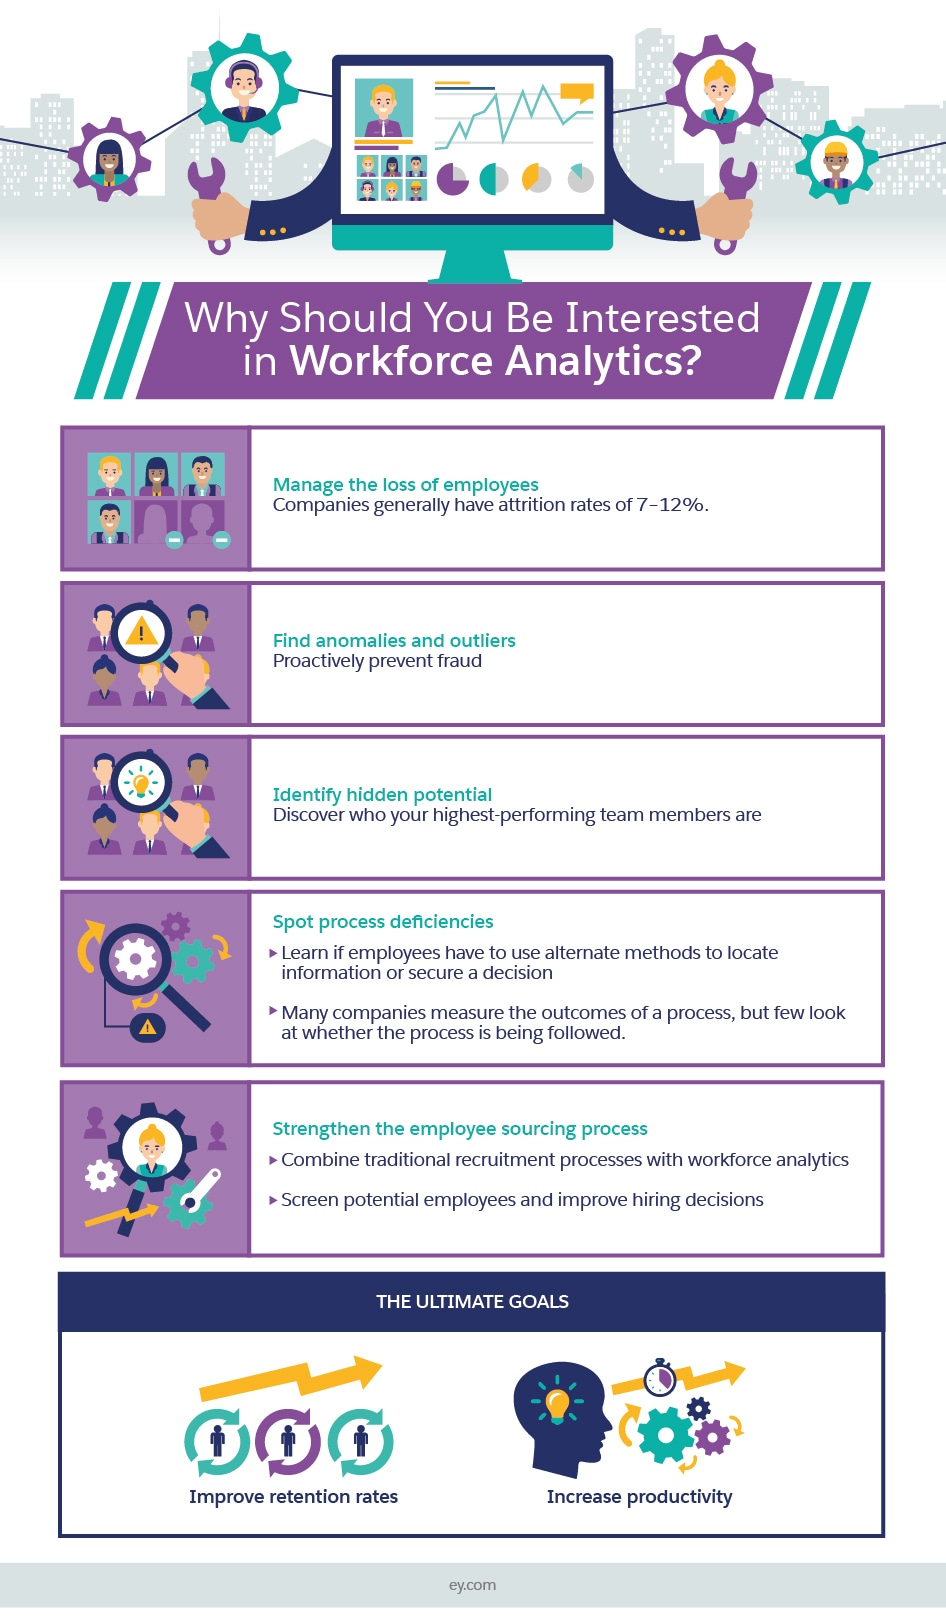 Why Should You Be Interested in Workforce Analytics